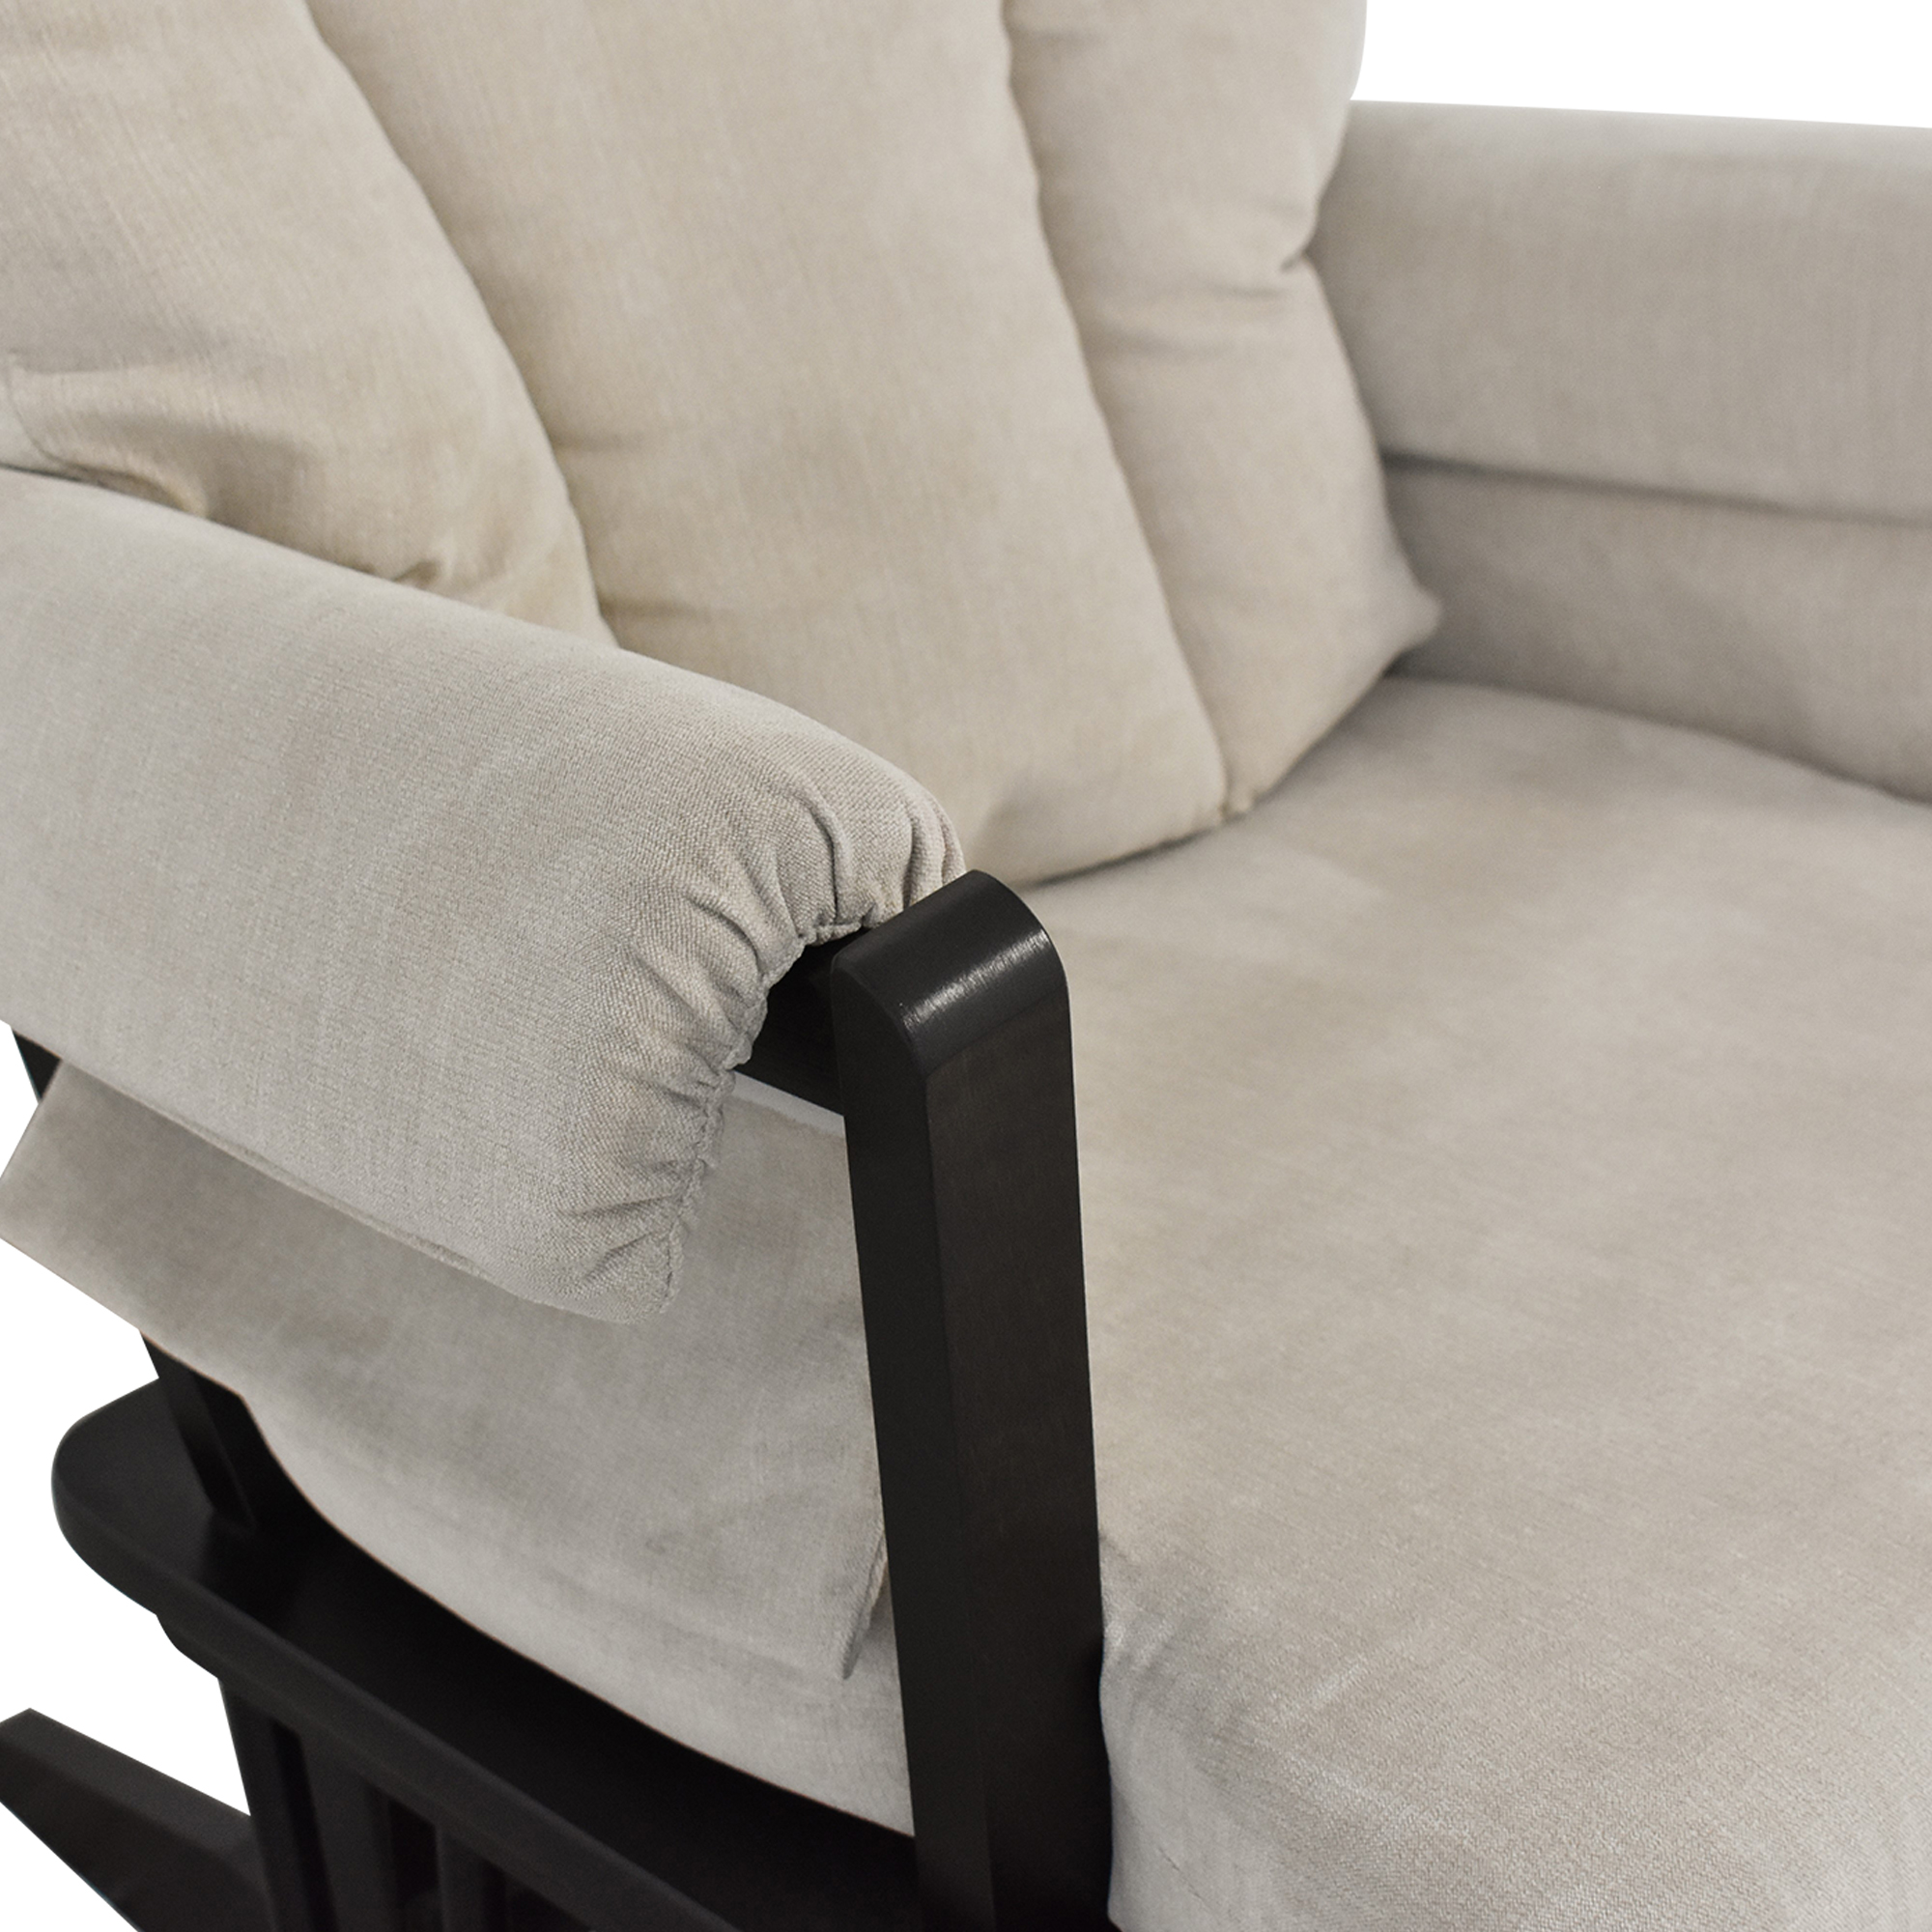 Dutailier Dutalier Rocking Chair and Ottoman dimensions